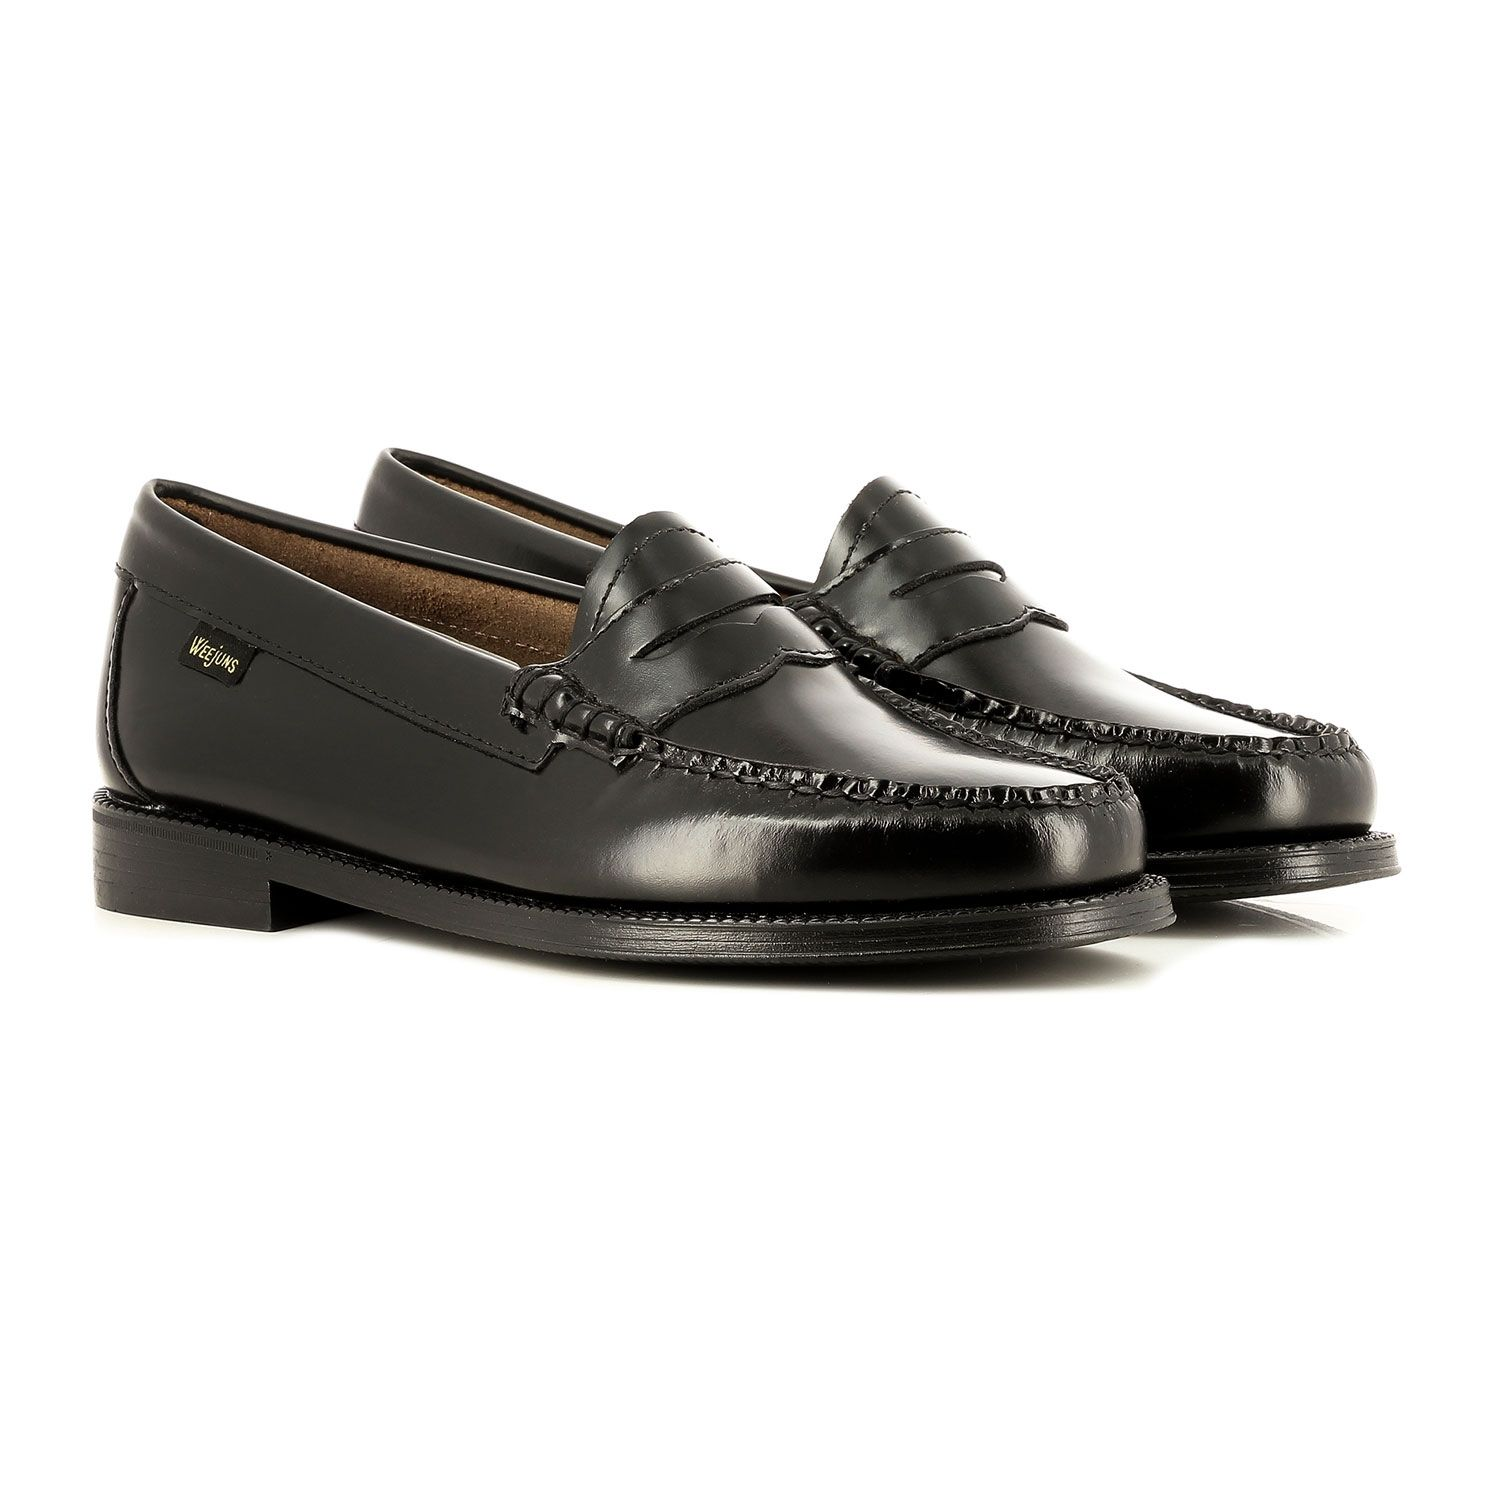 G. H. Bass Easy Weejuns Penny Loafers